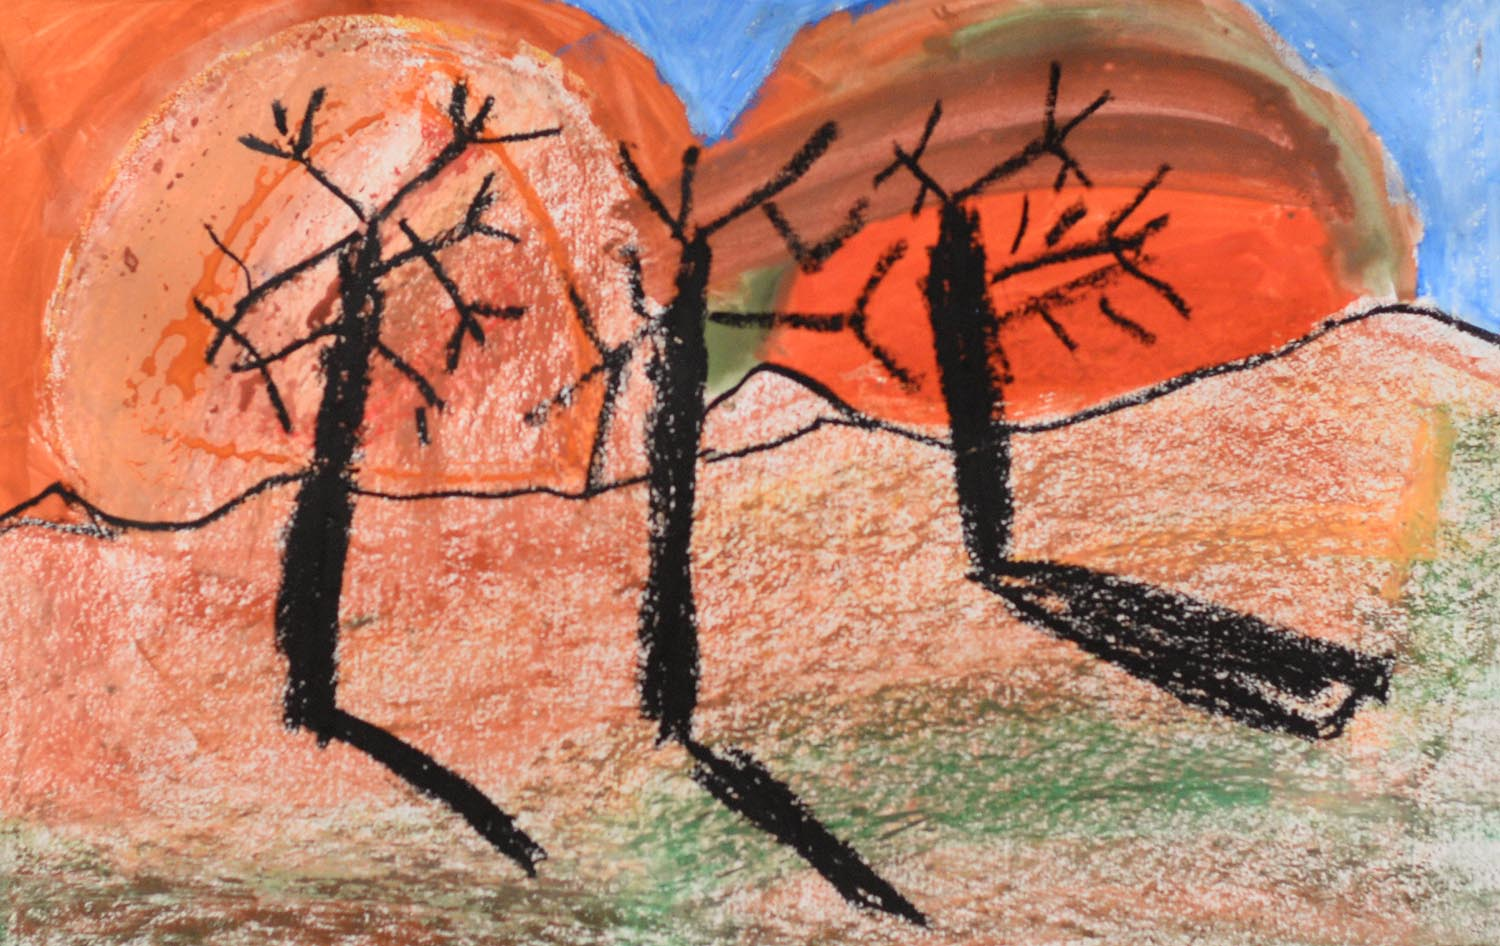 Dillian, a third-grader at Snow Elementary School, created this fall earth-tone landscape.